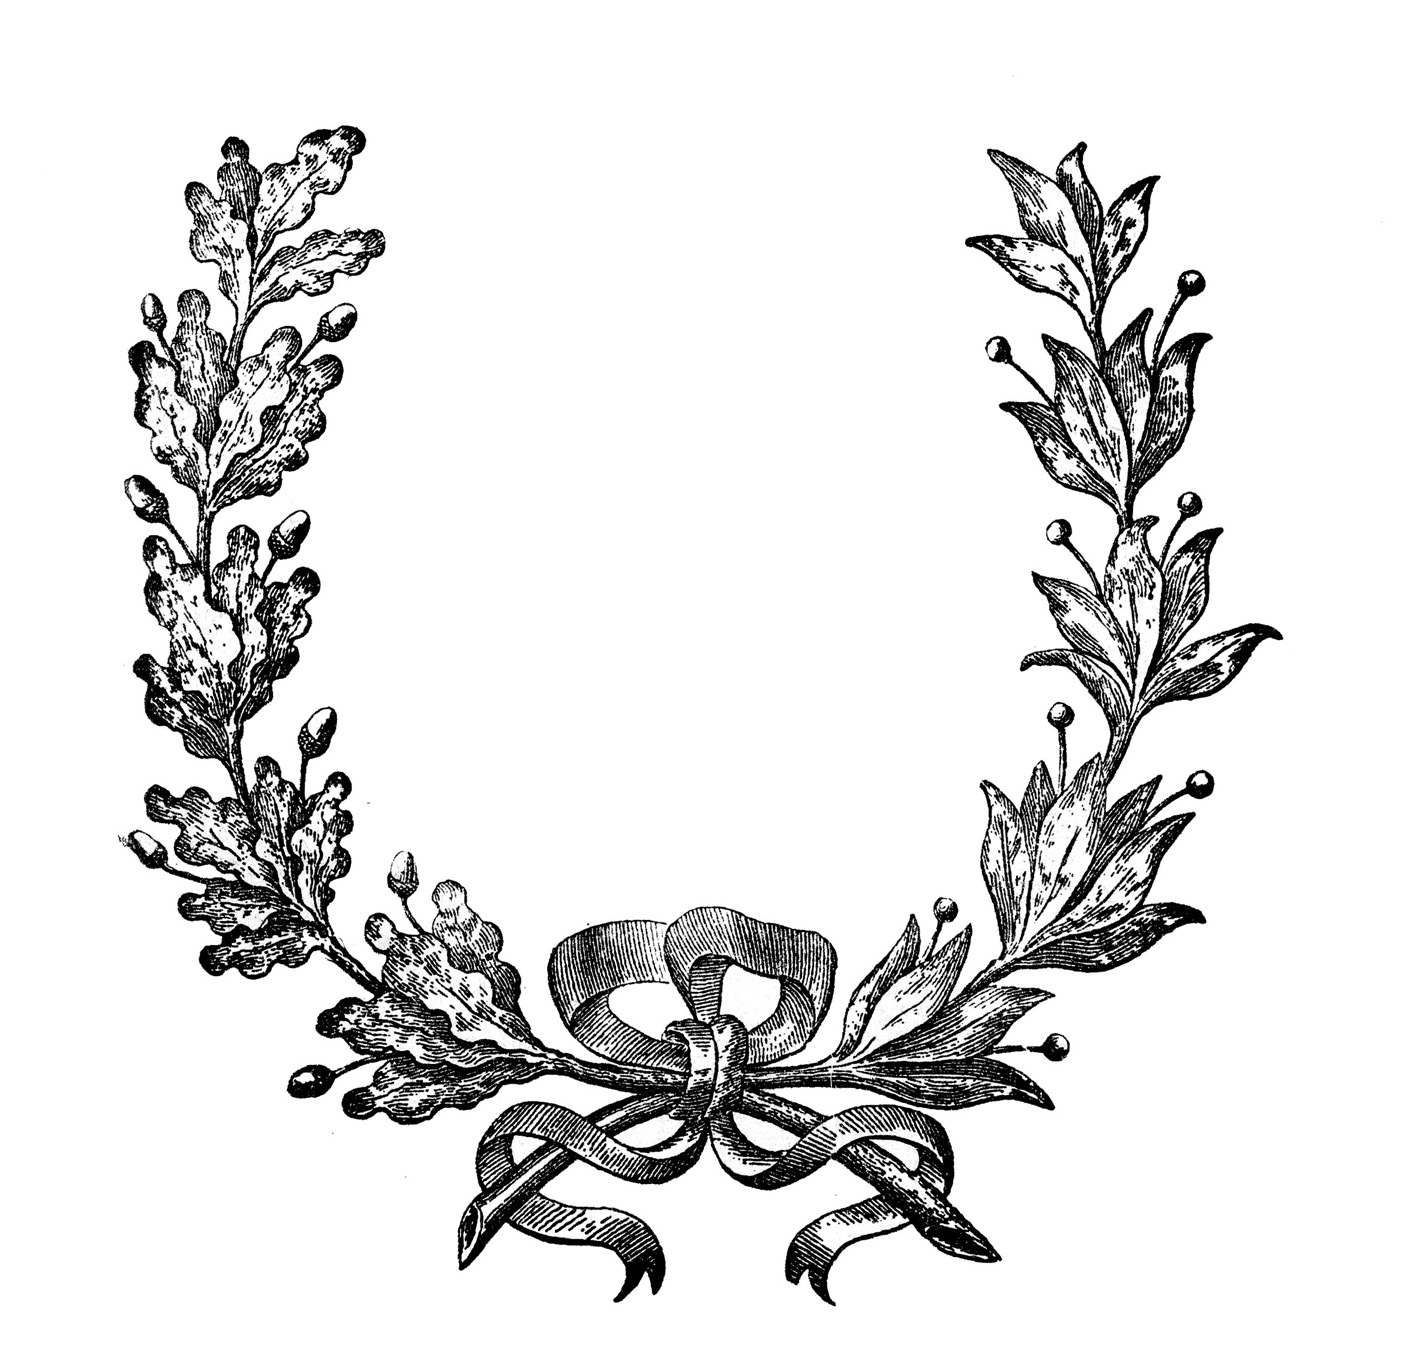 1420x1349 Vintage Clip Art French Wreath Engraving The Graphics Fairy